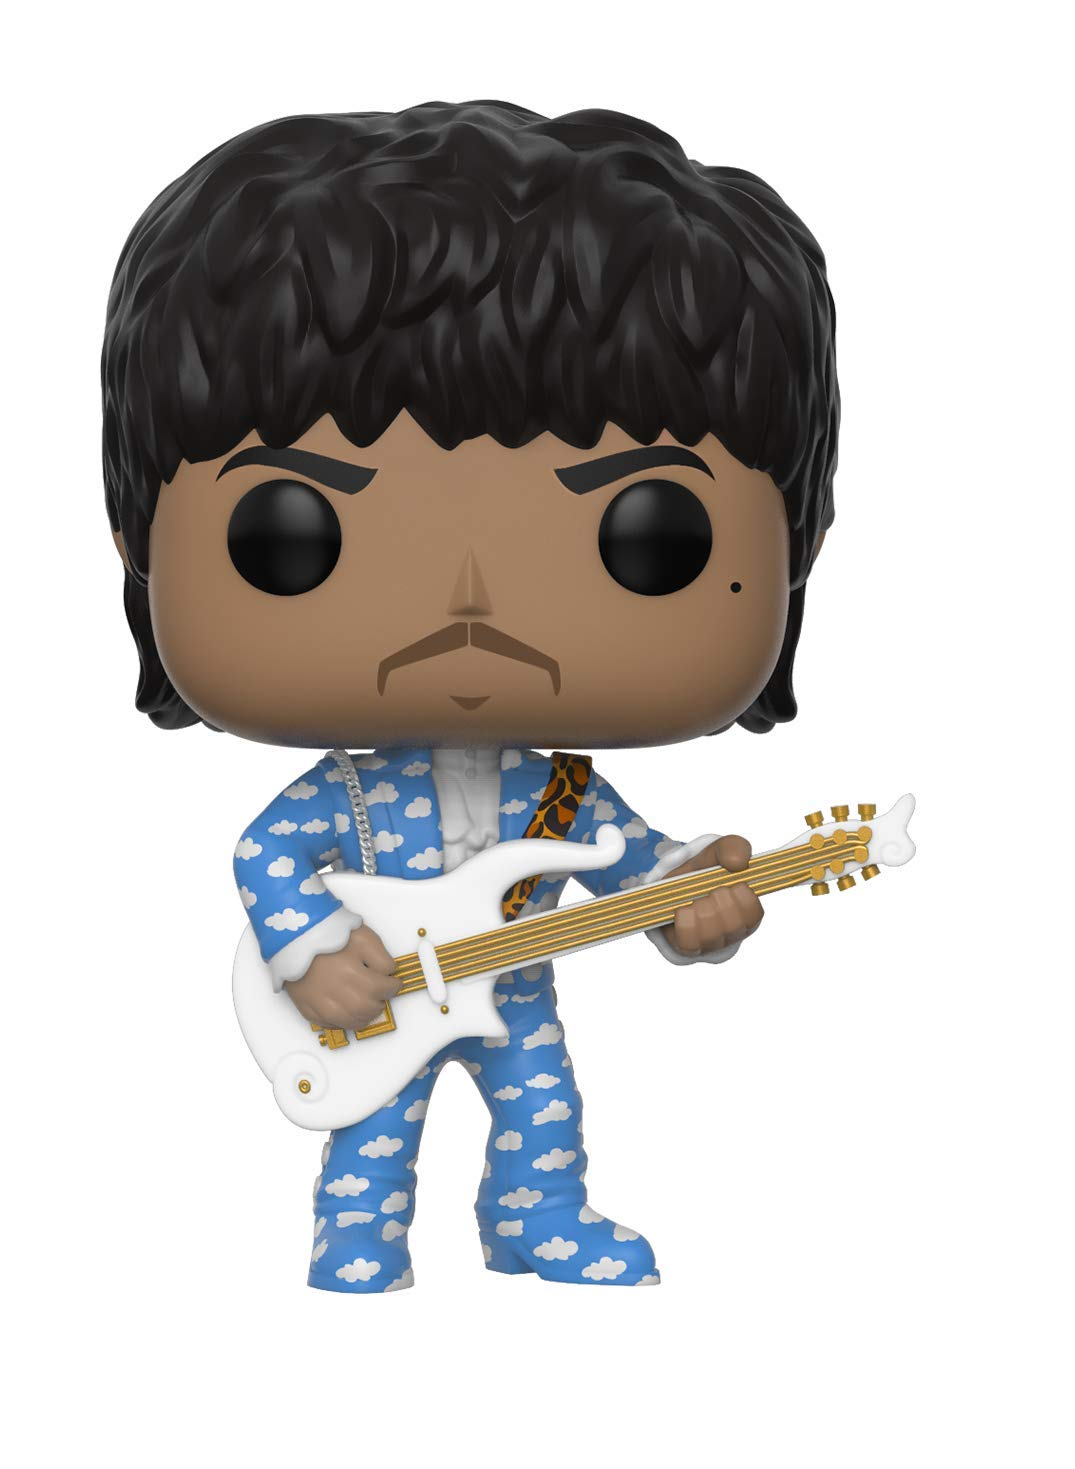 Funko Pop! Prince - Around The World in a Day